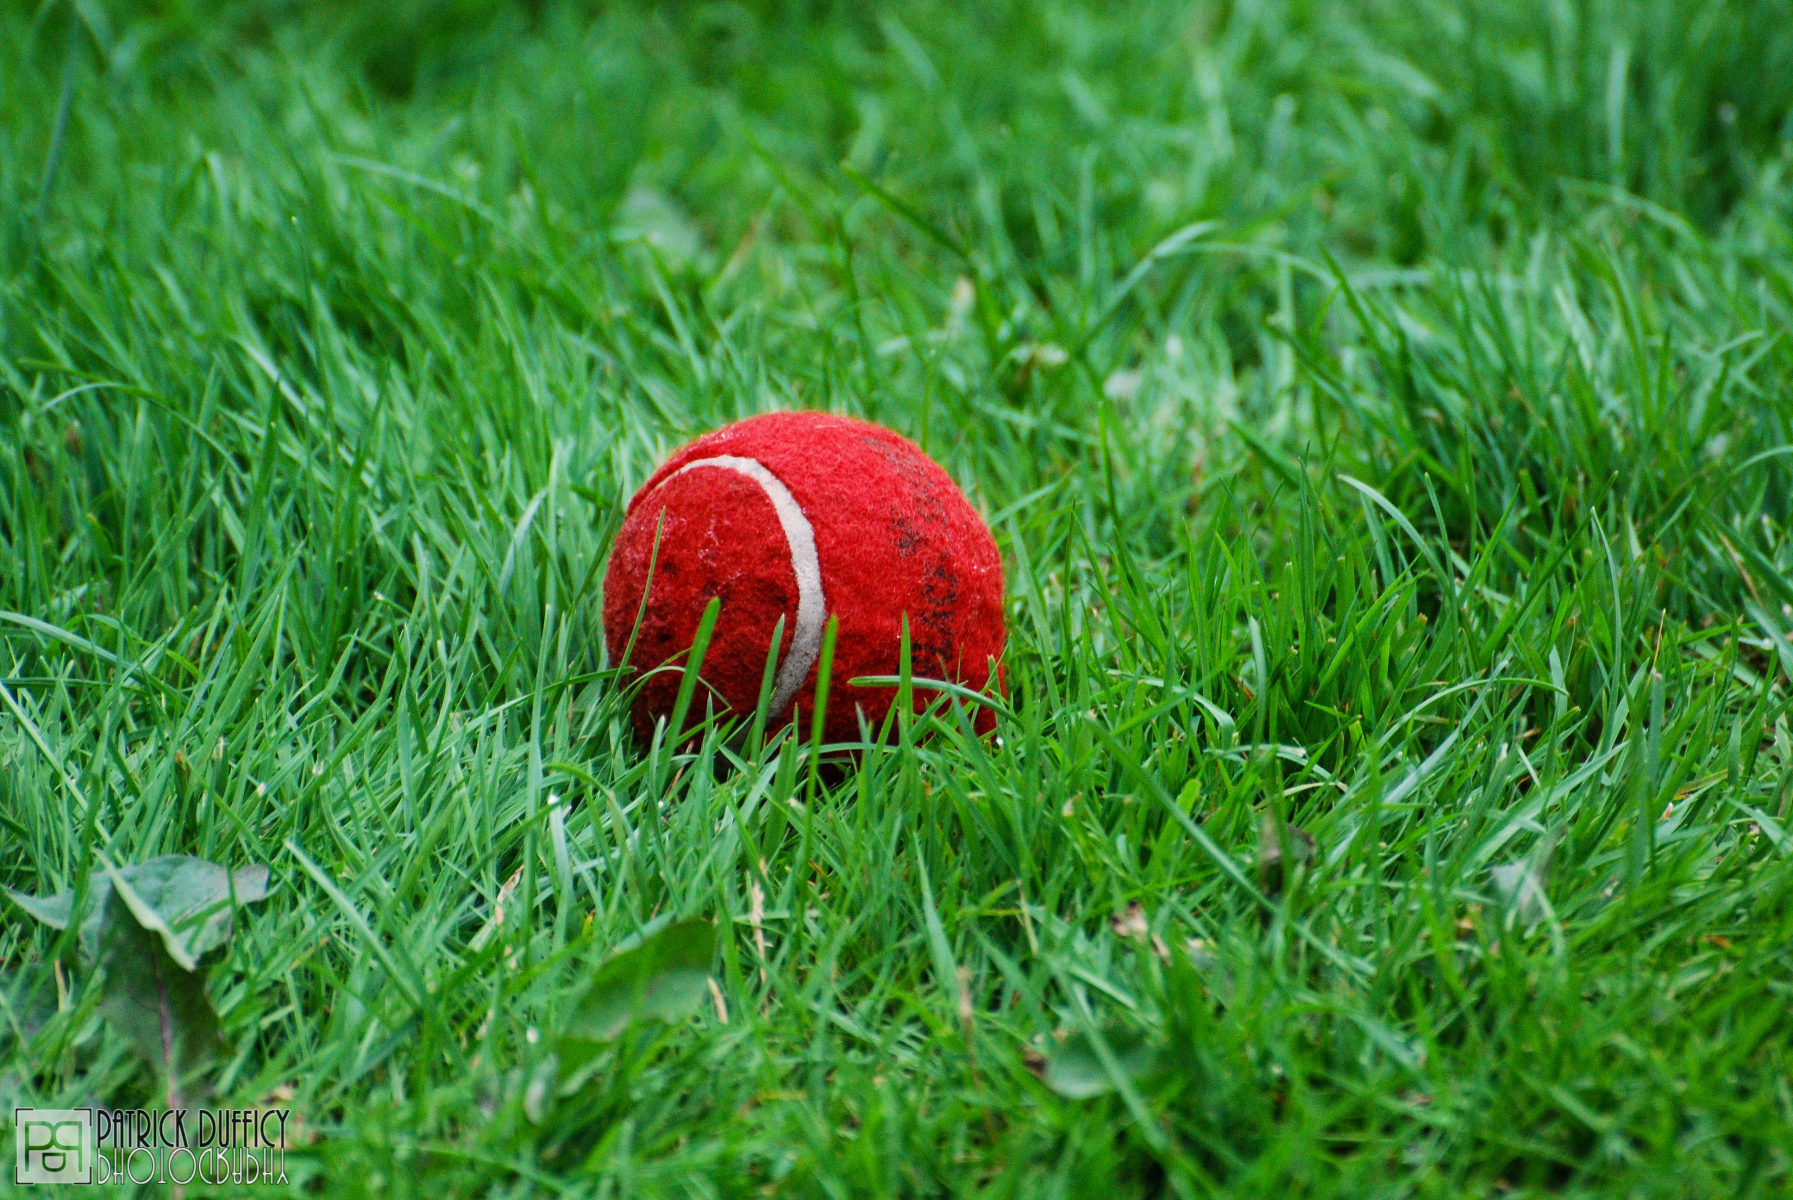 the-red-ball_16214763392_o